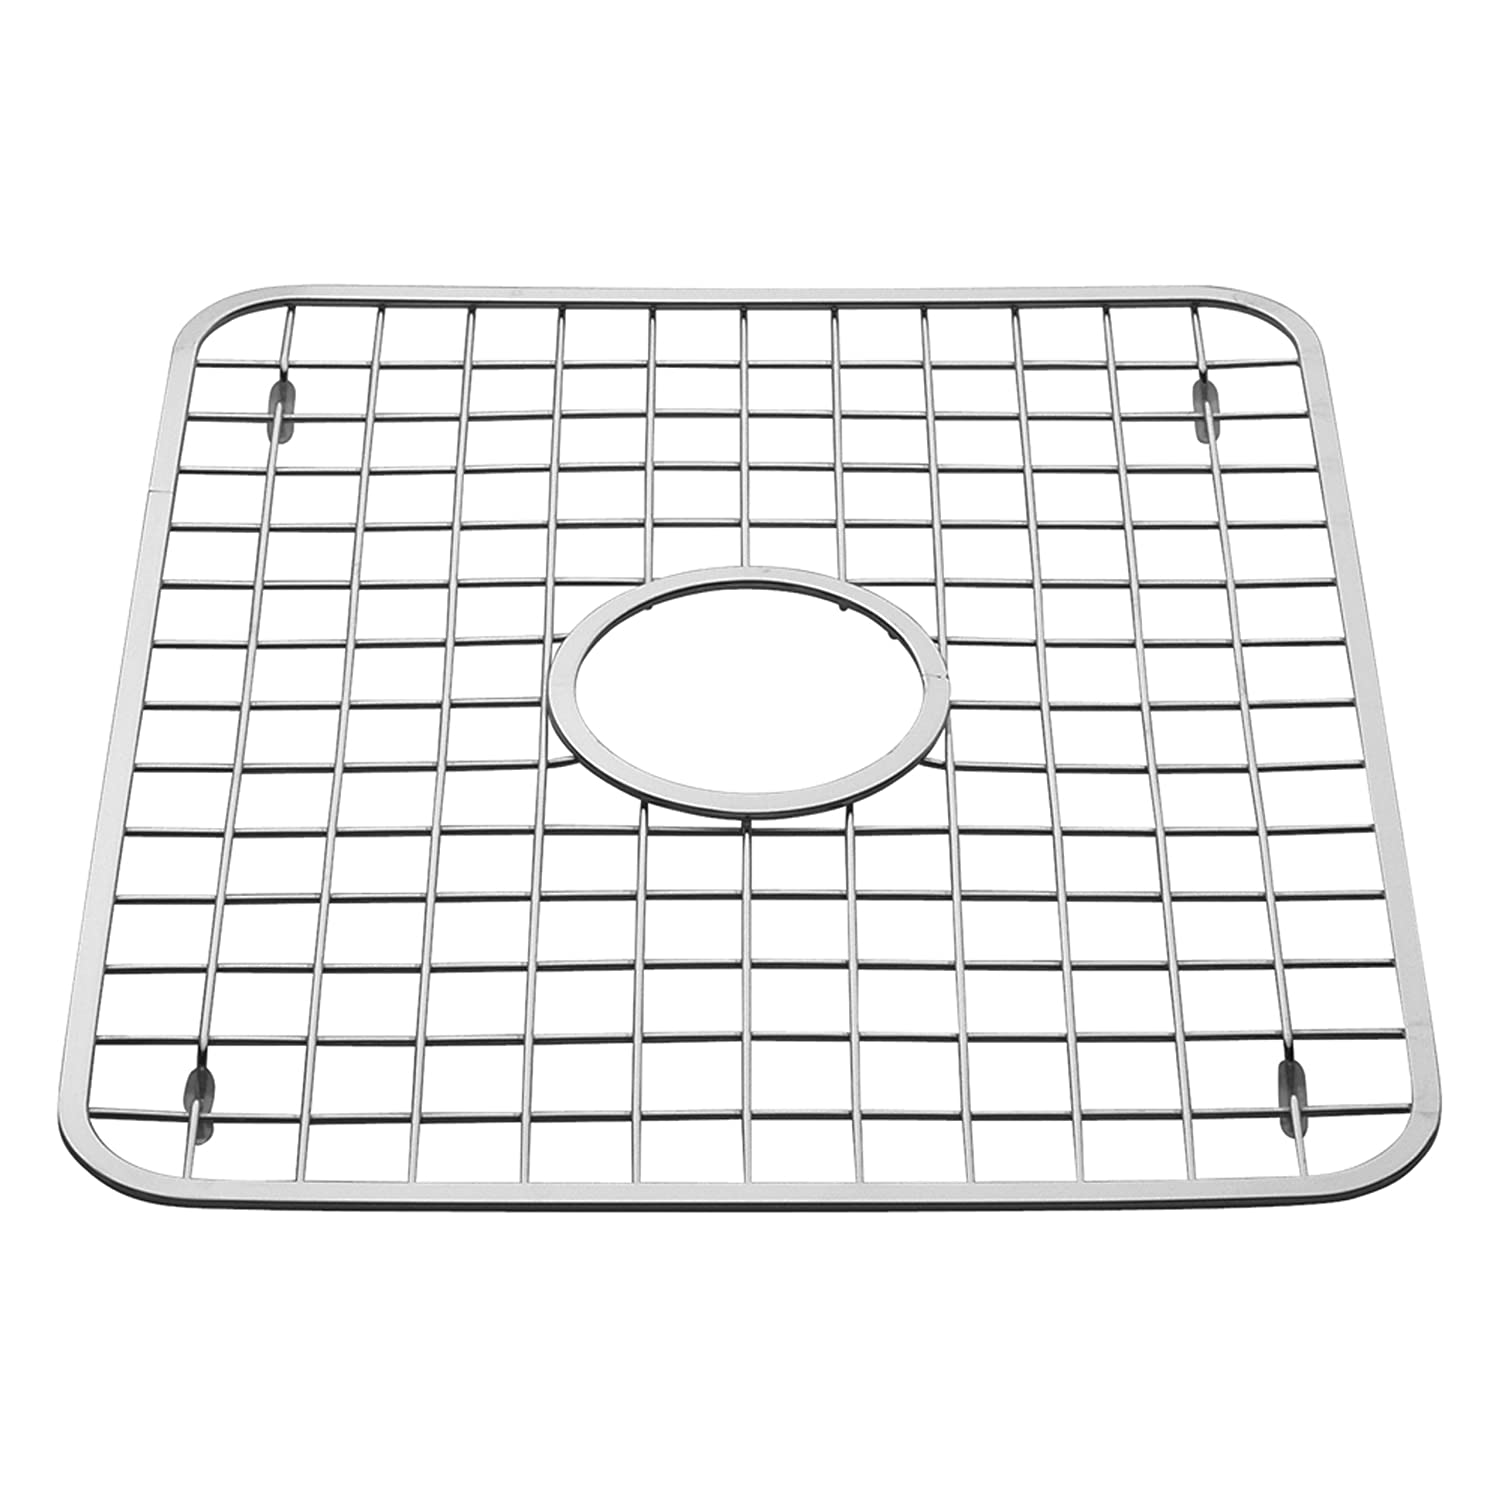 Beautiful Amazon.com: InterDesign Gia Kitchen Sink Protector   Wire Grid Mat With  Center Drain Hole, Polished: Home U0026 Kitchen